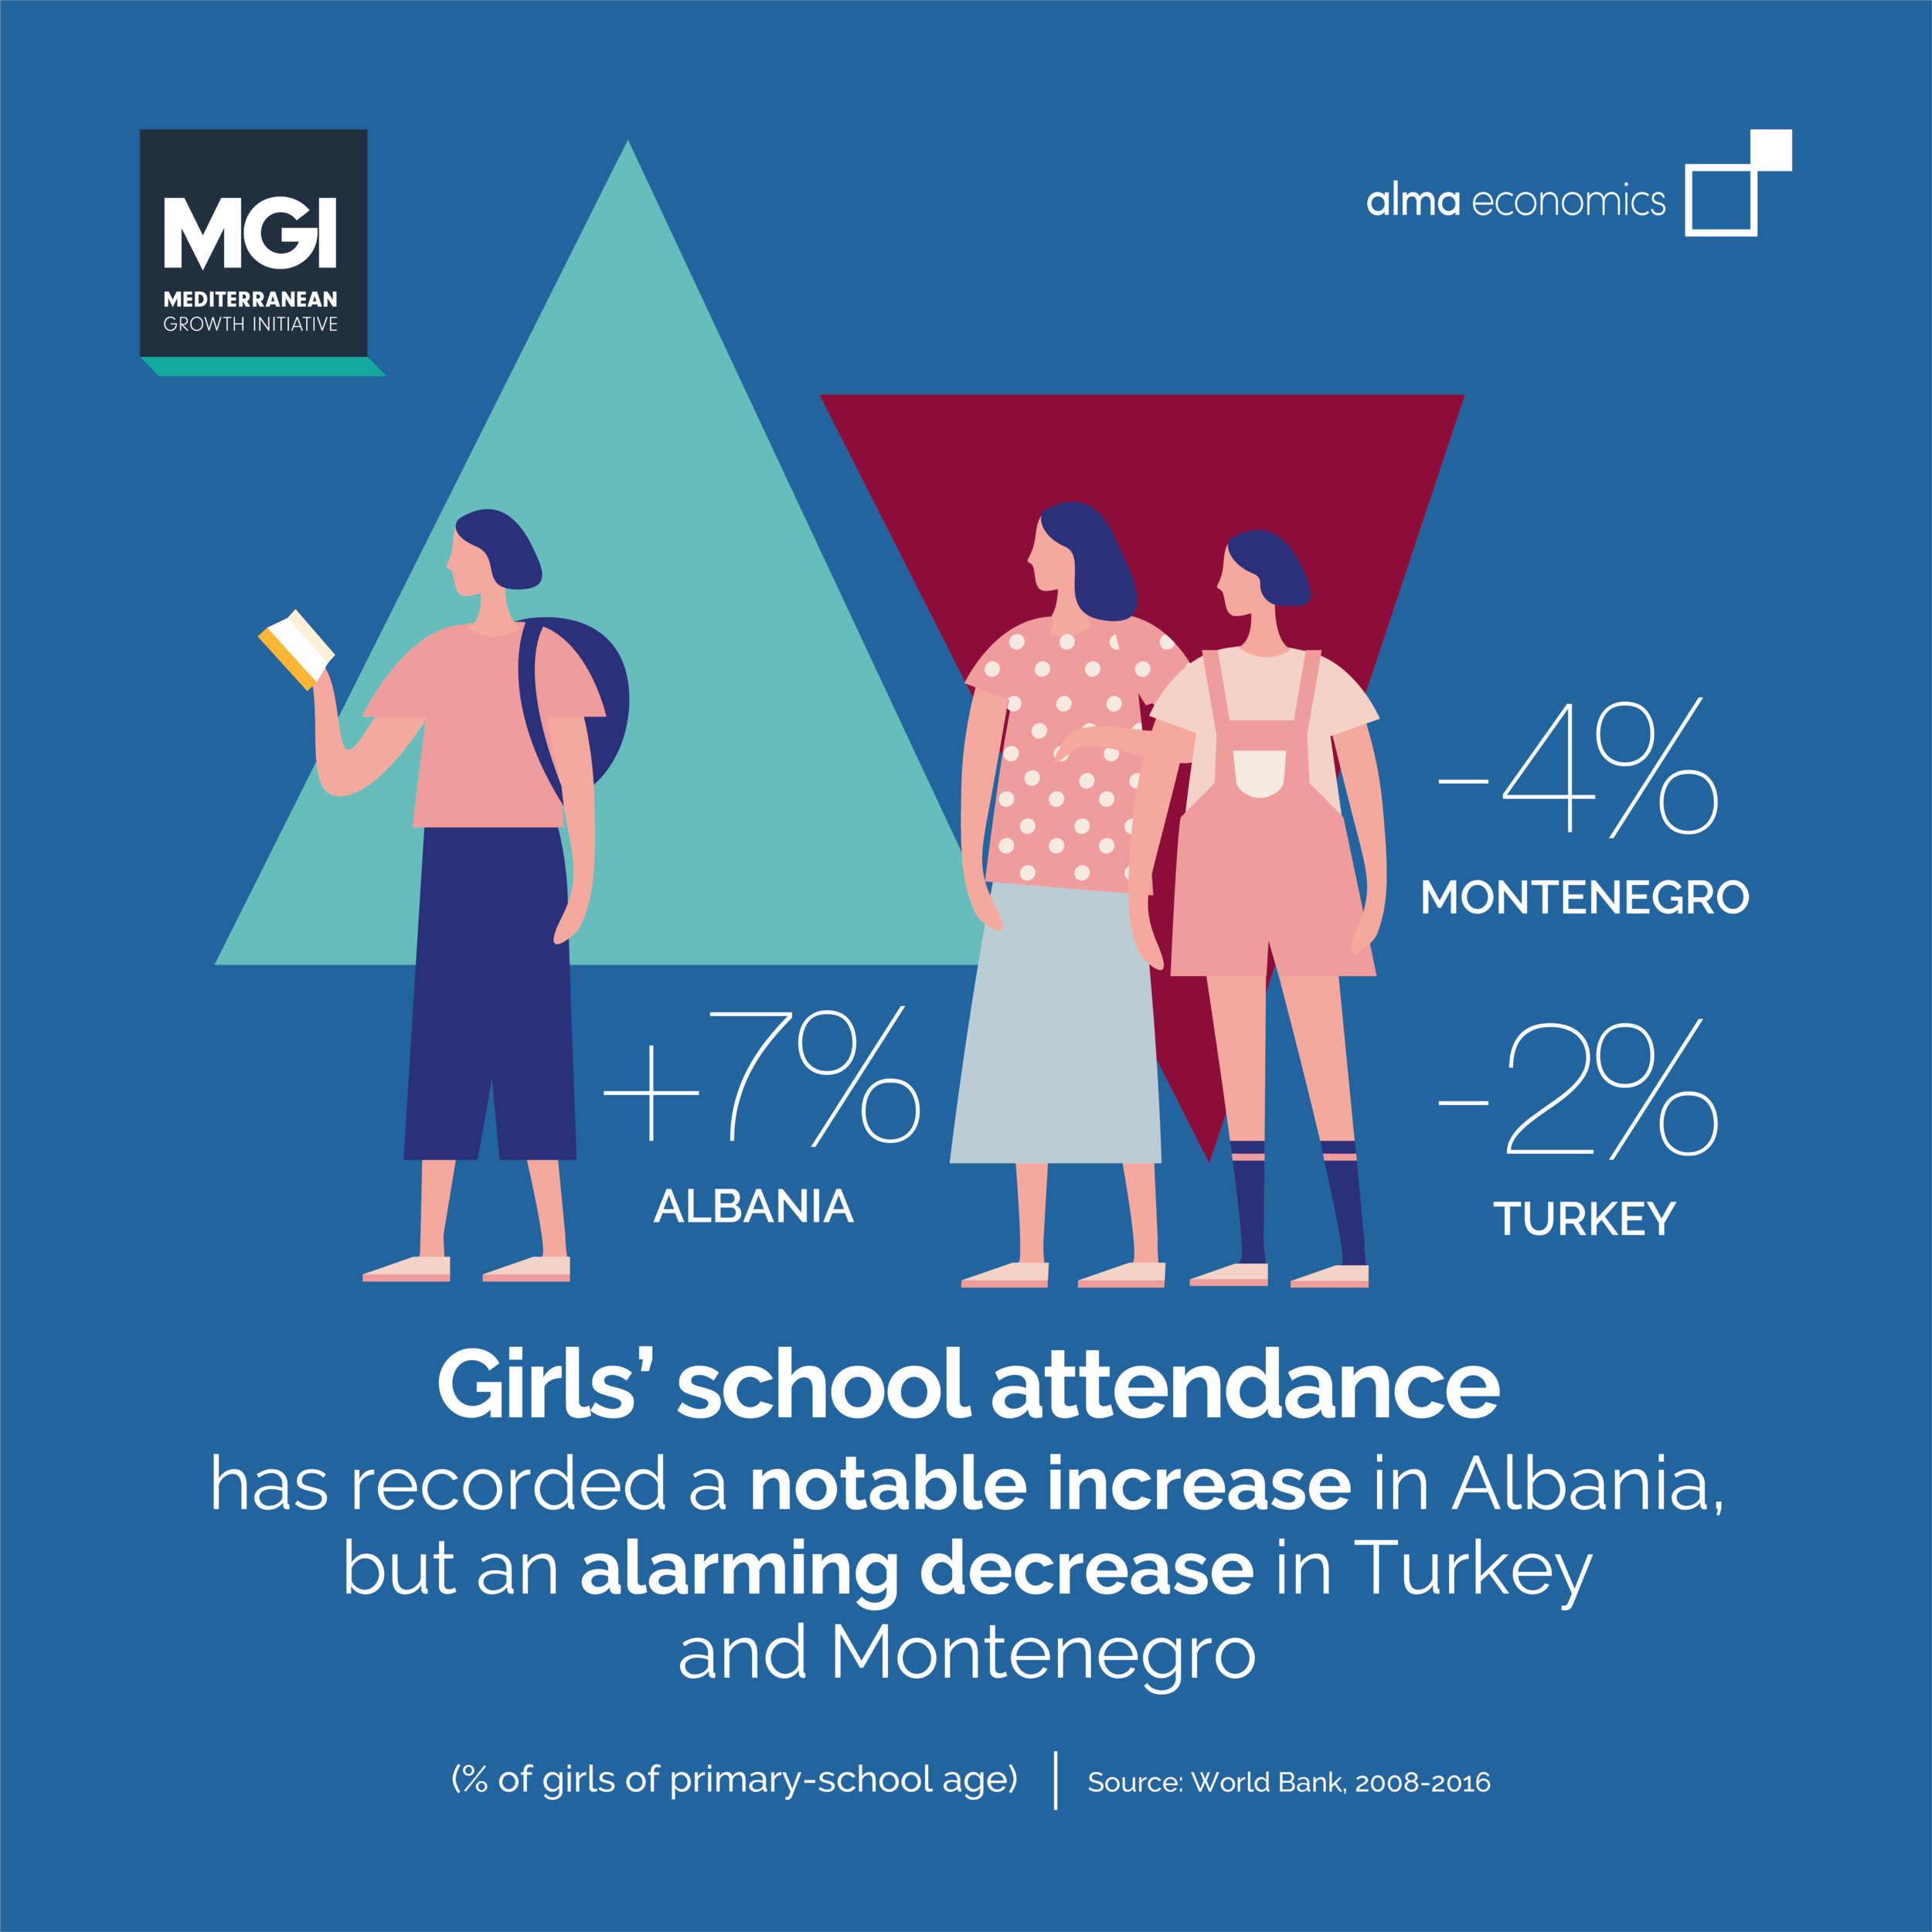 Girls' school attendance in non-EU Med countries - There's been a significant increase in girls' primary school attendance in Albania, but an alarming decrease in Turkey and Montenegro